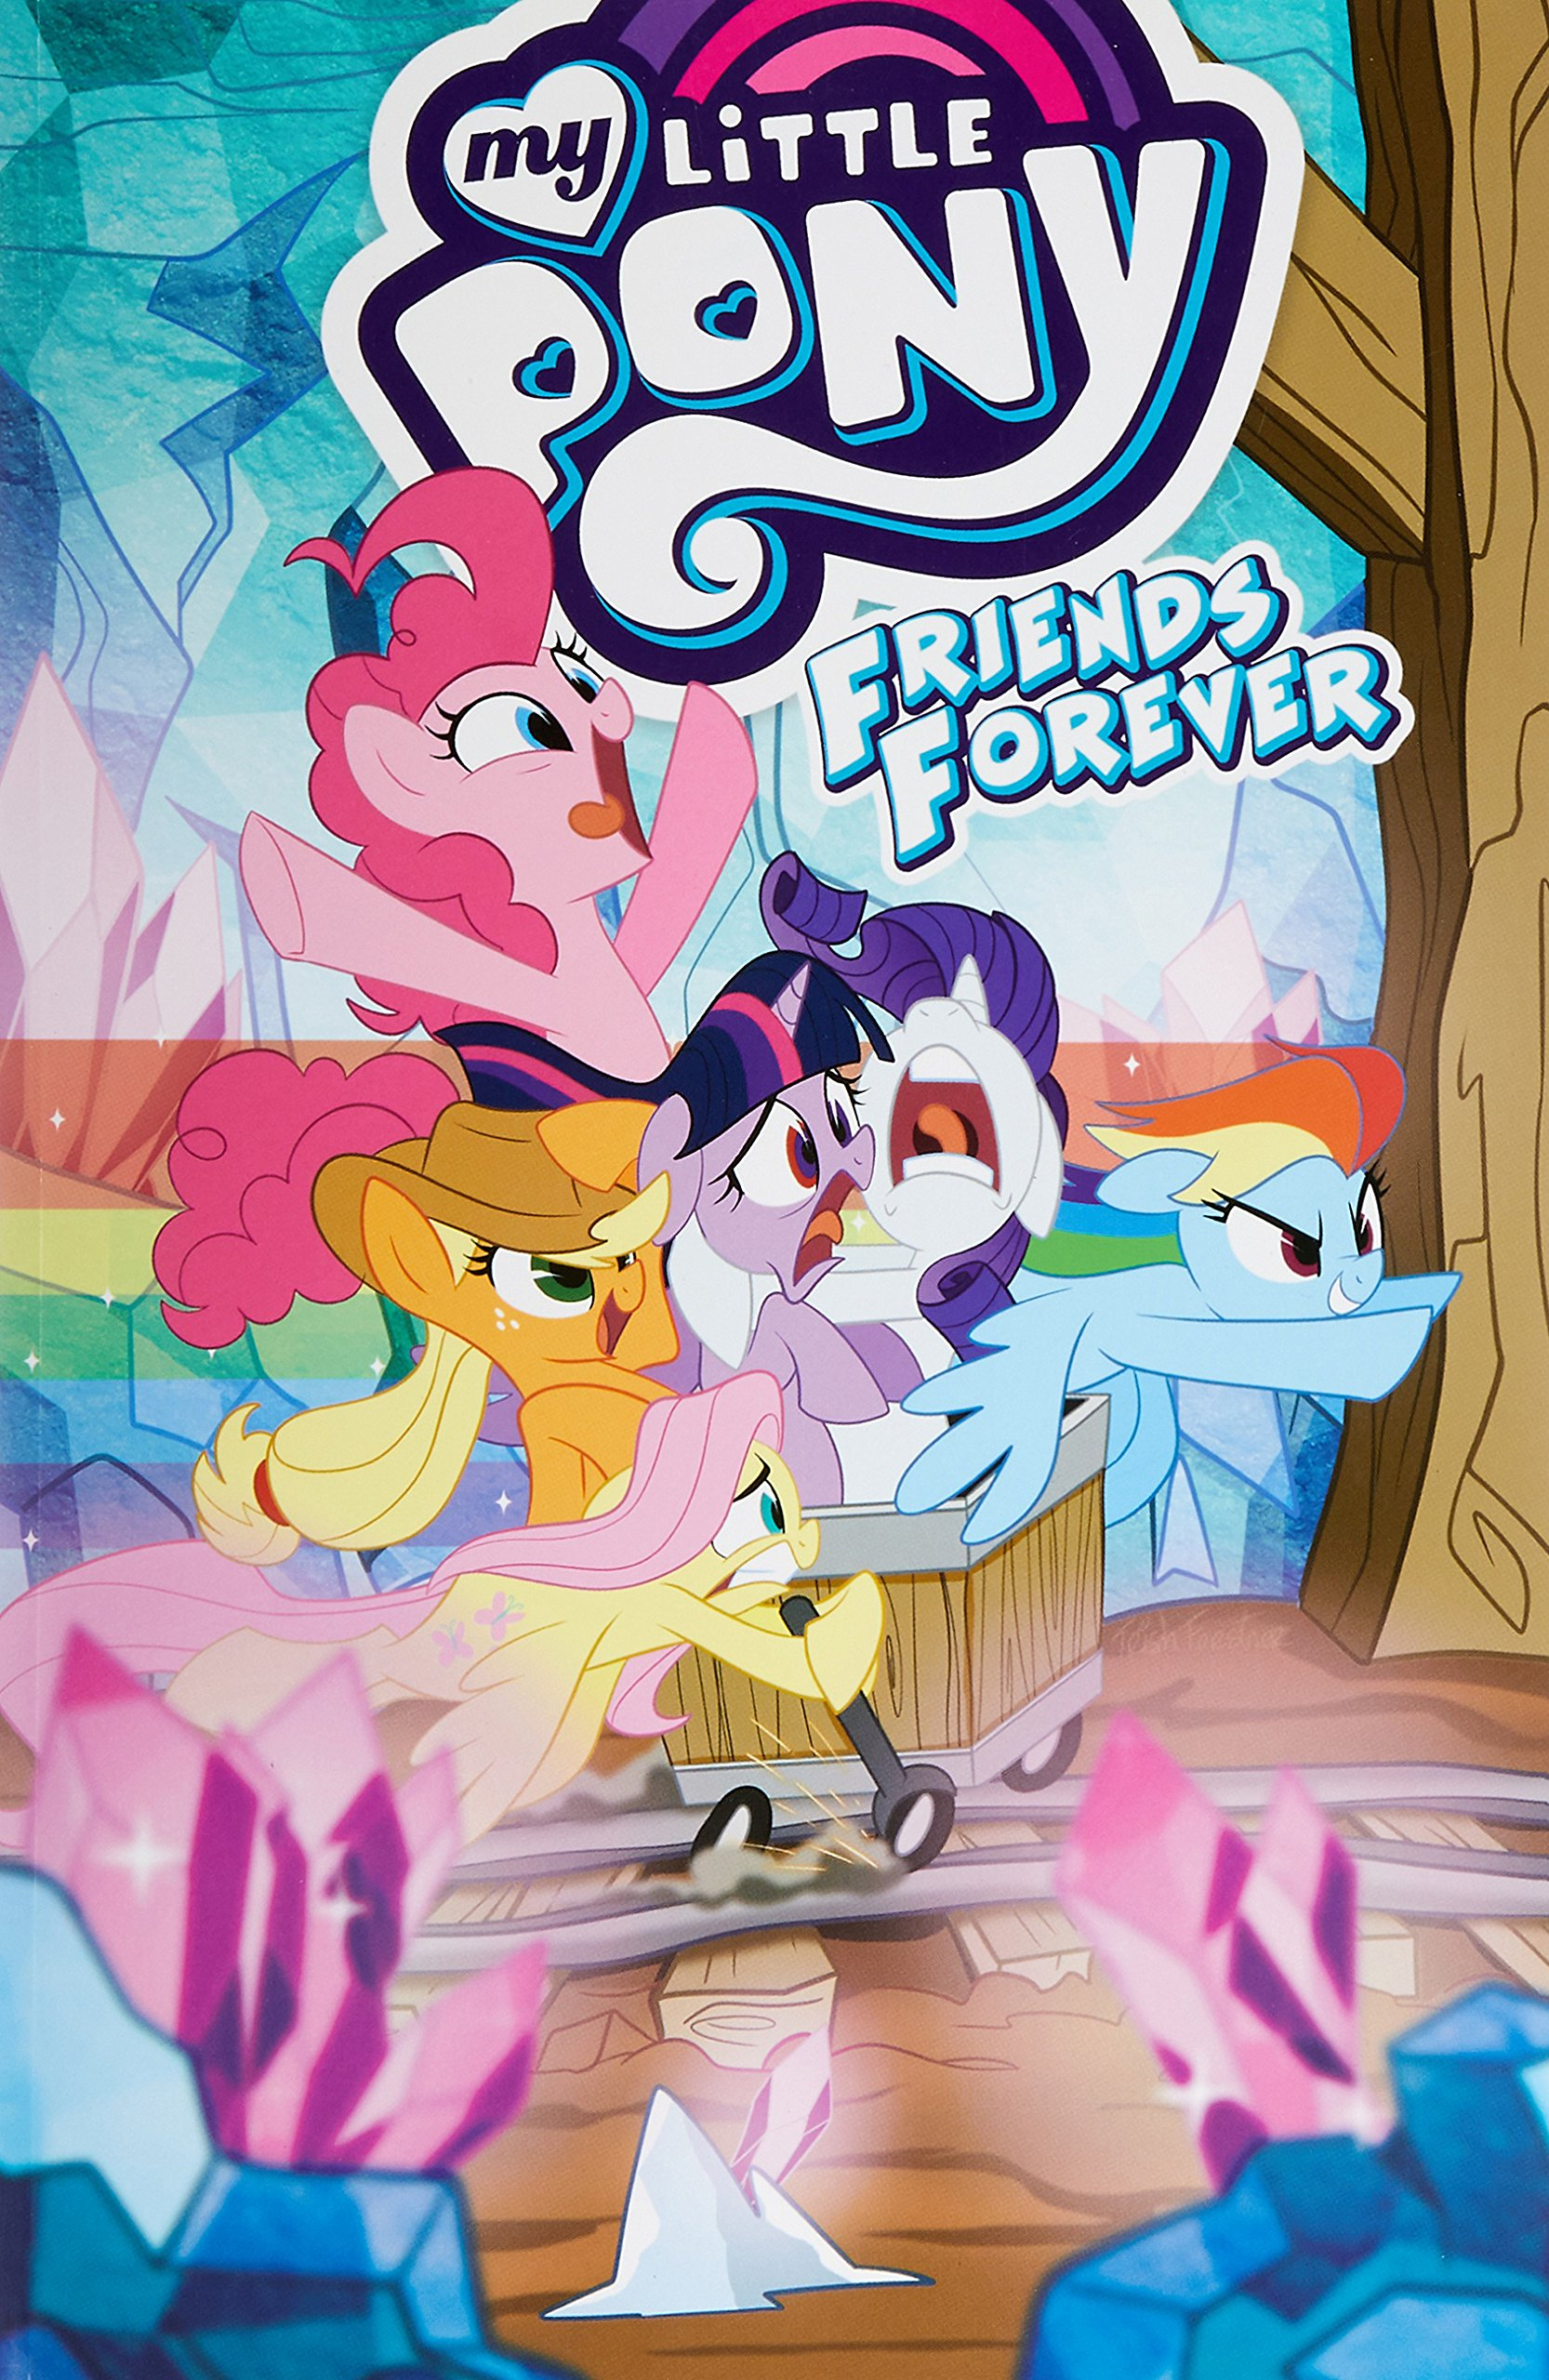 my-little-pony-friends-forever-volume-8